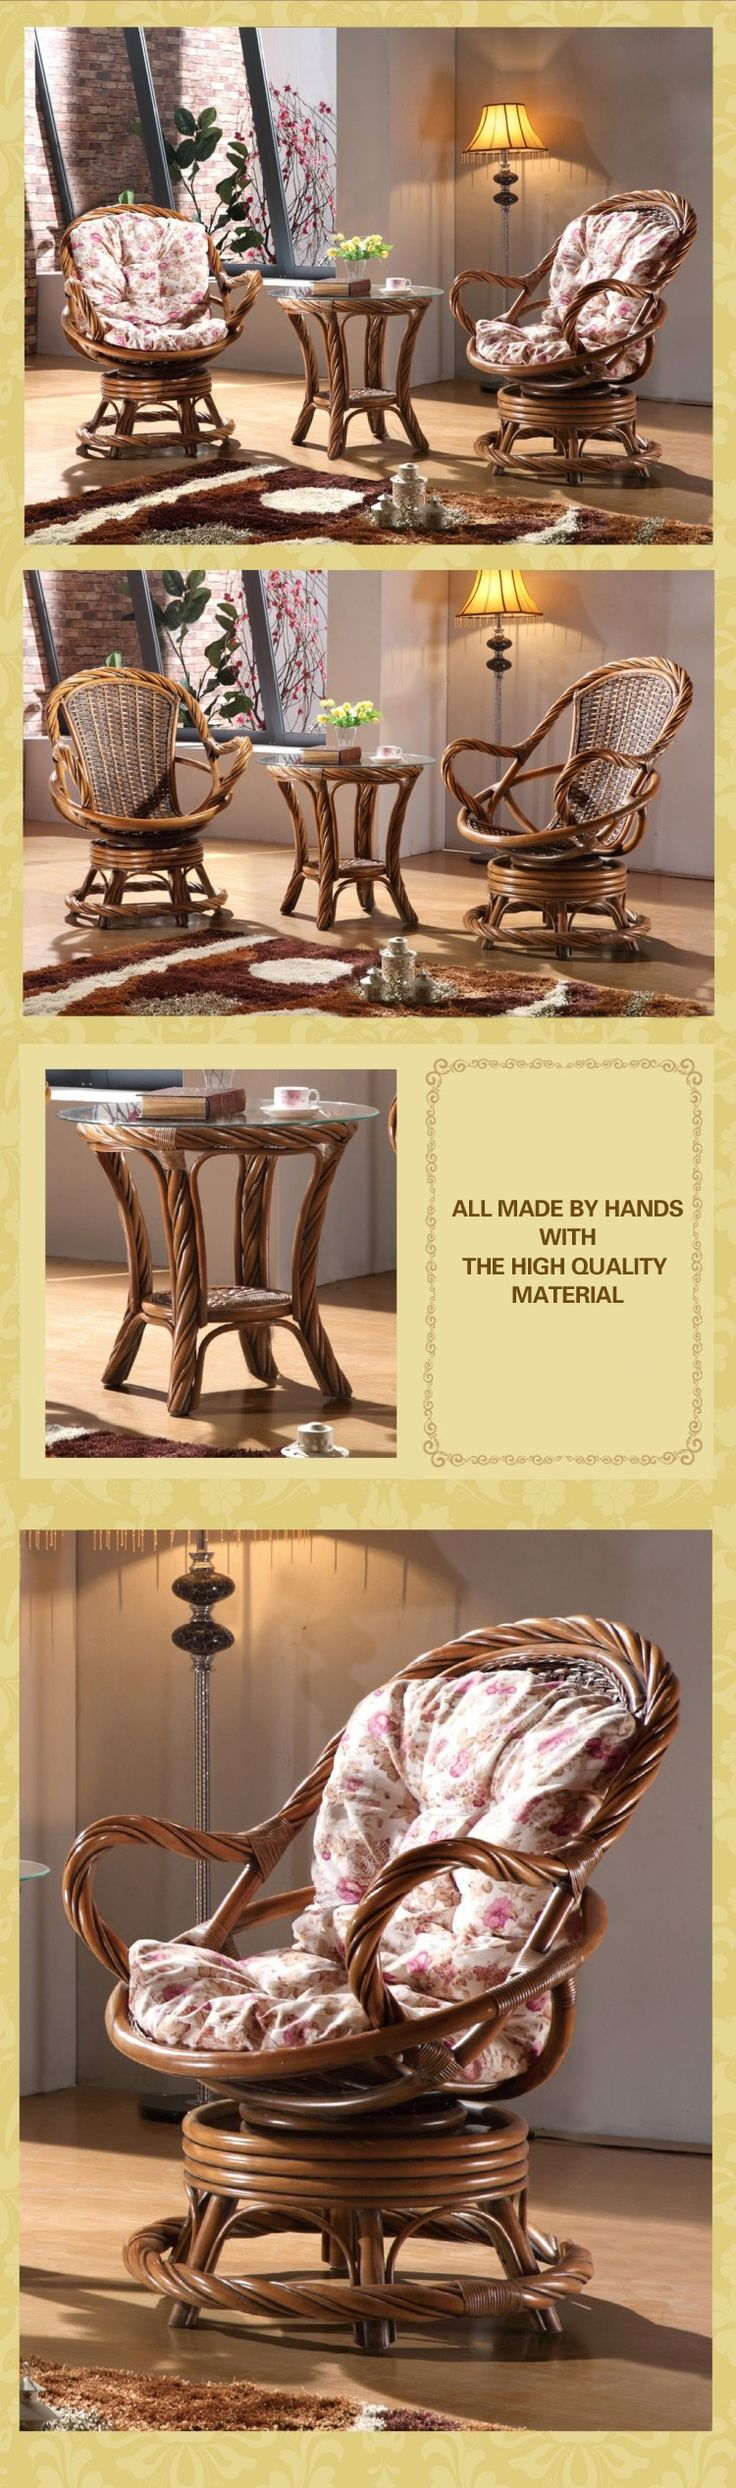 42418271 as well Id F 1013186 likewise Rattan Dining Chairs as well South Sea Rattan Panama Coffee Table further Classic Coastal Avalon Wicker Bench. on indoor rattan wicker furniture